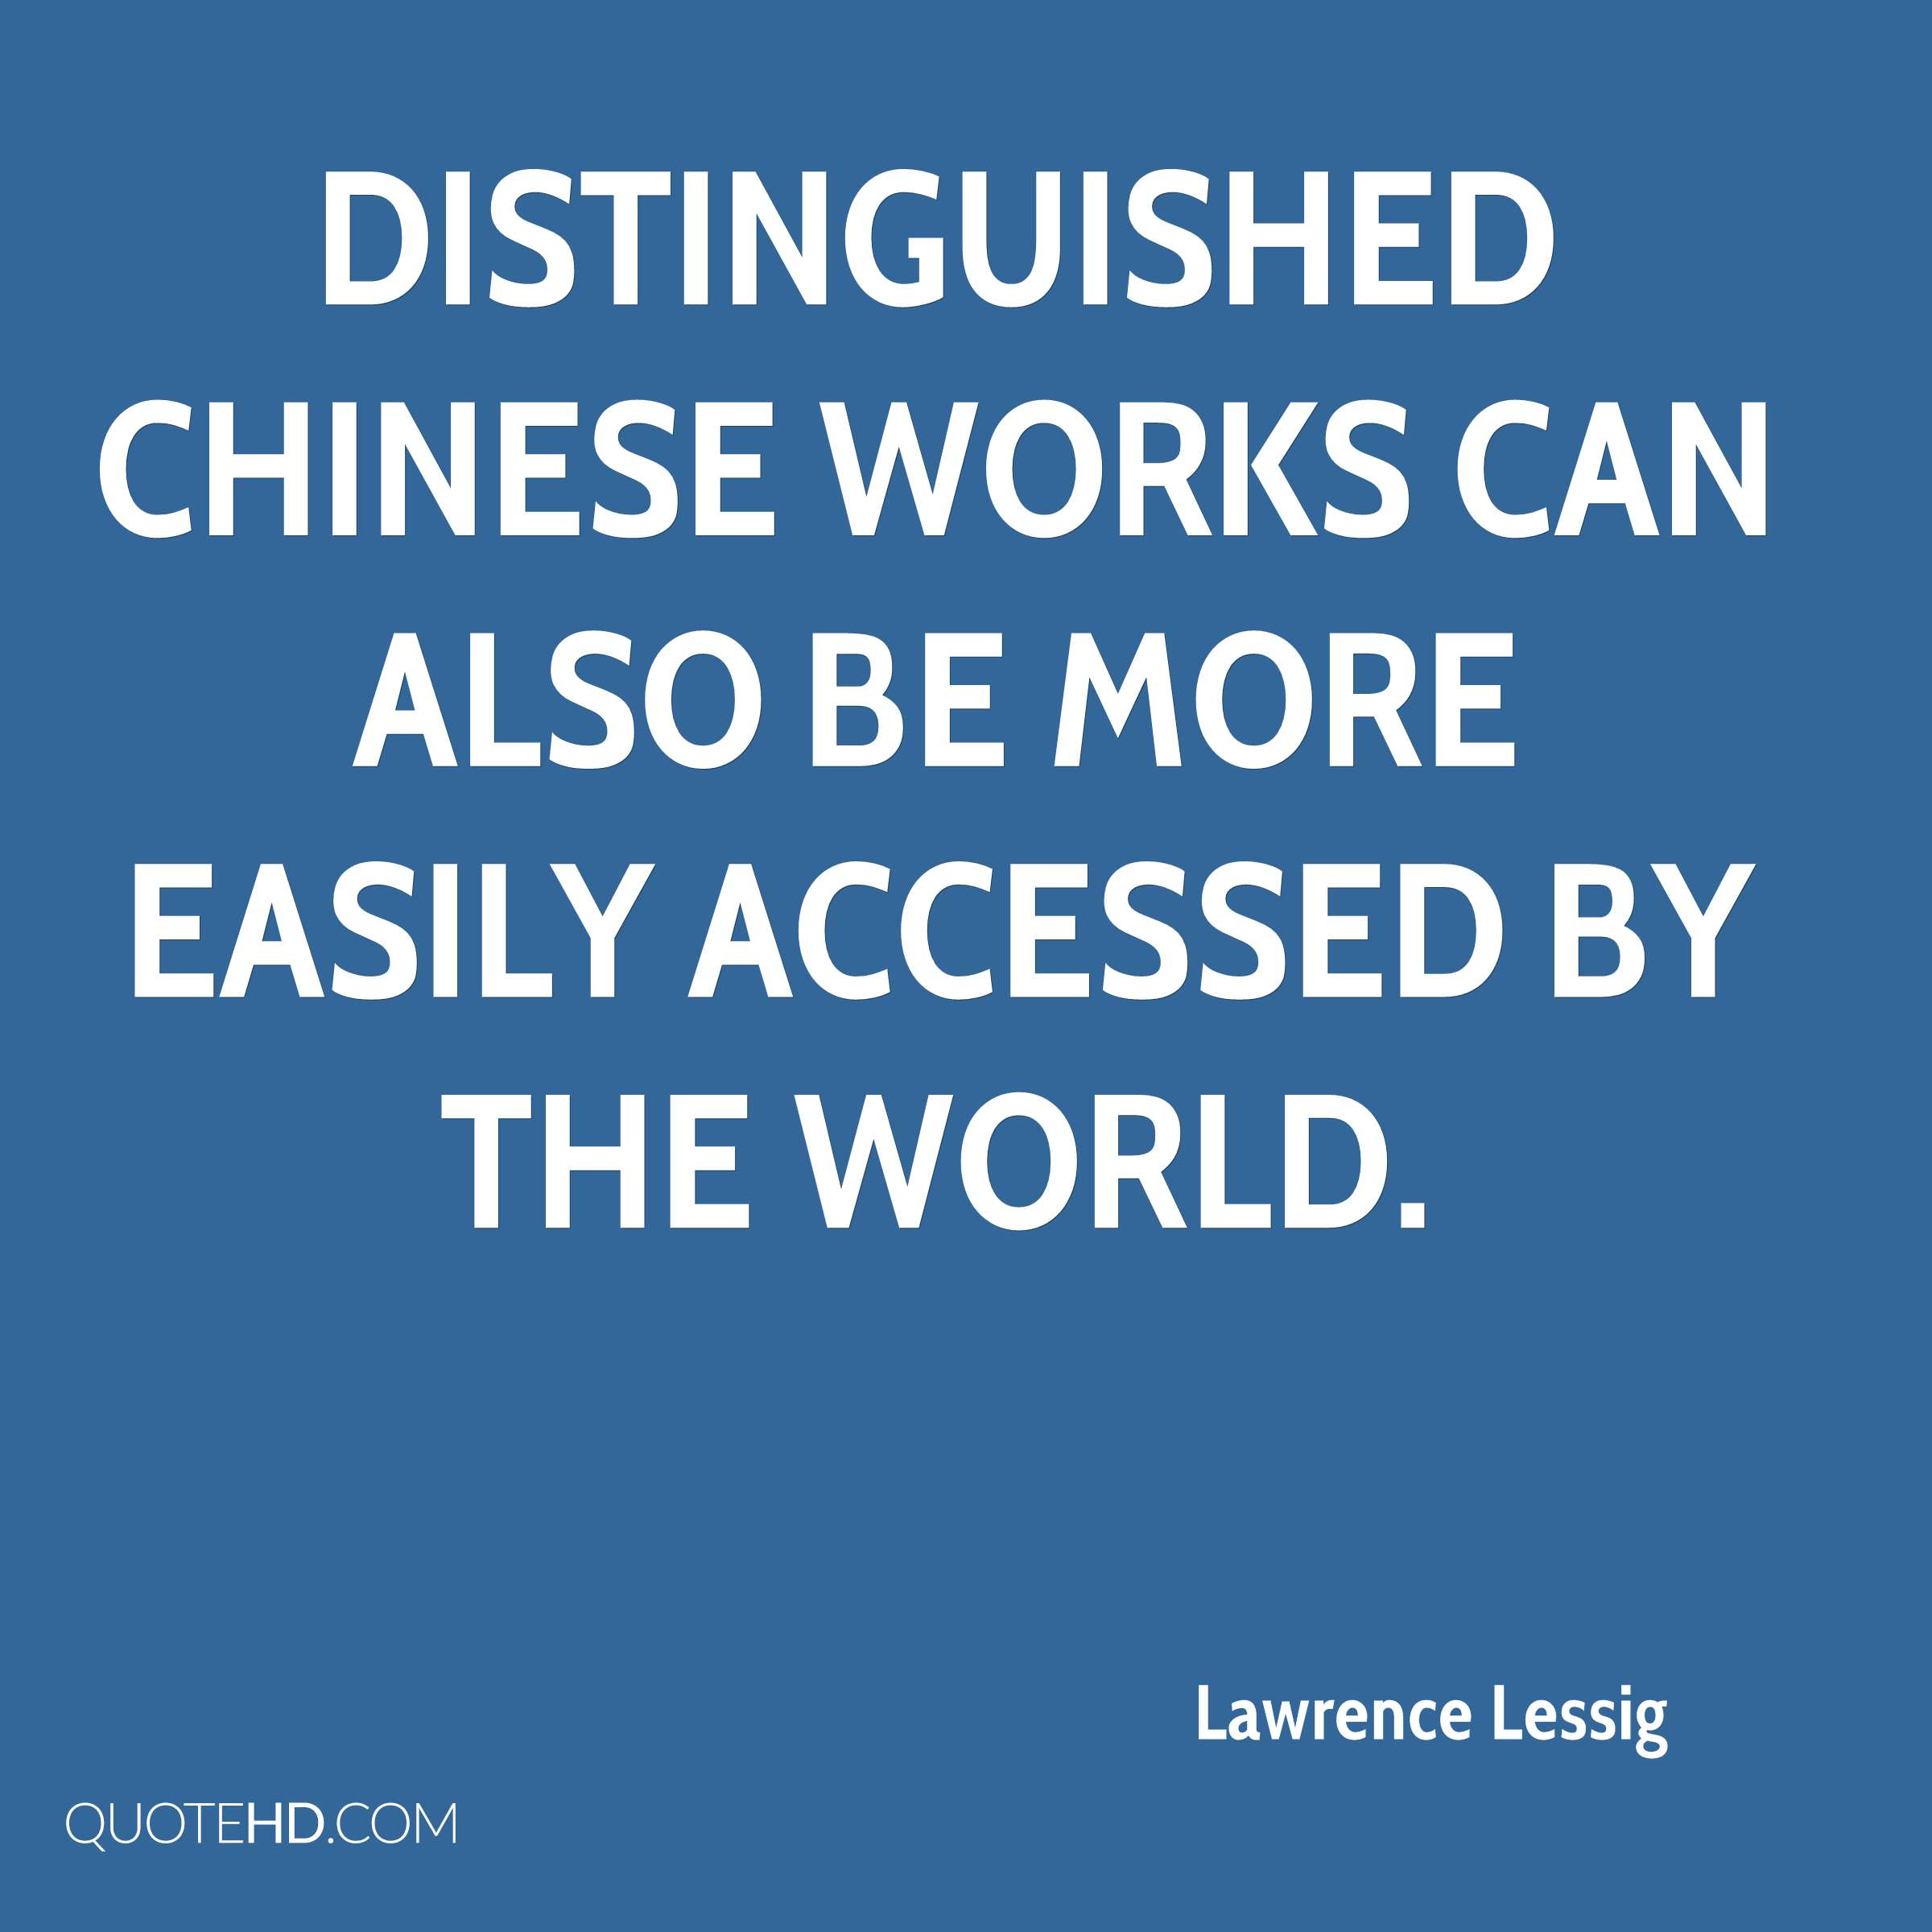 Distinguished Chinese works can also be more easily accessed by the world.